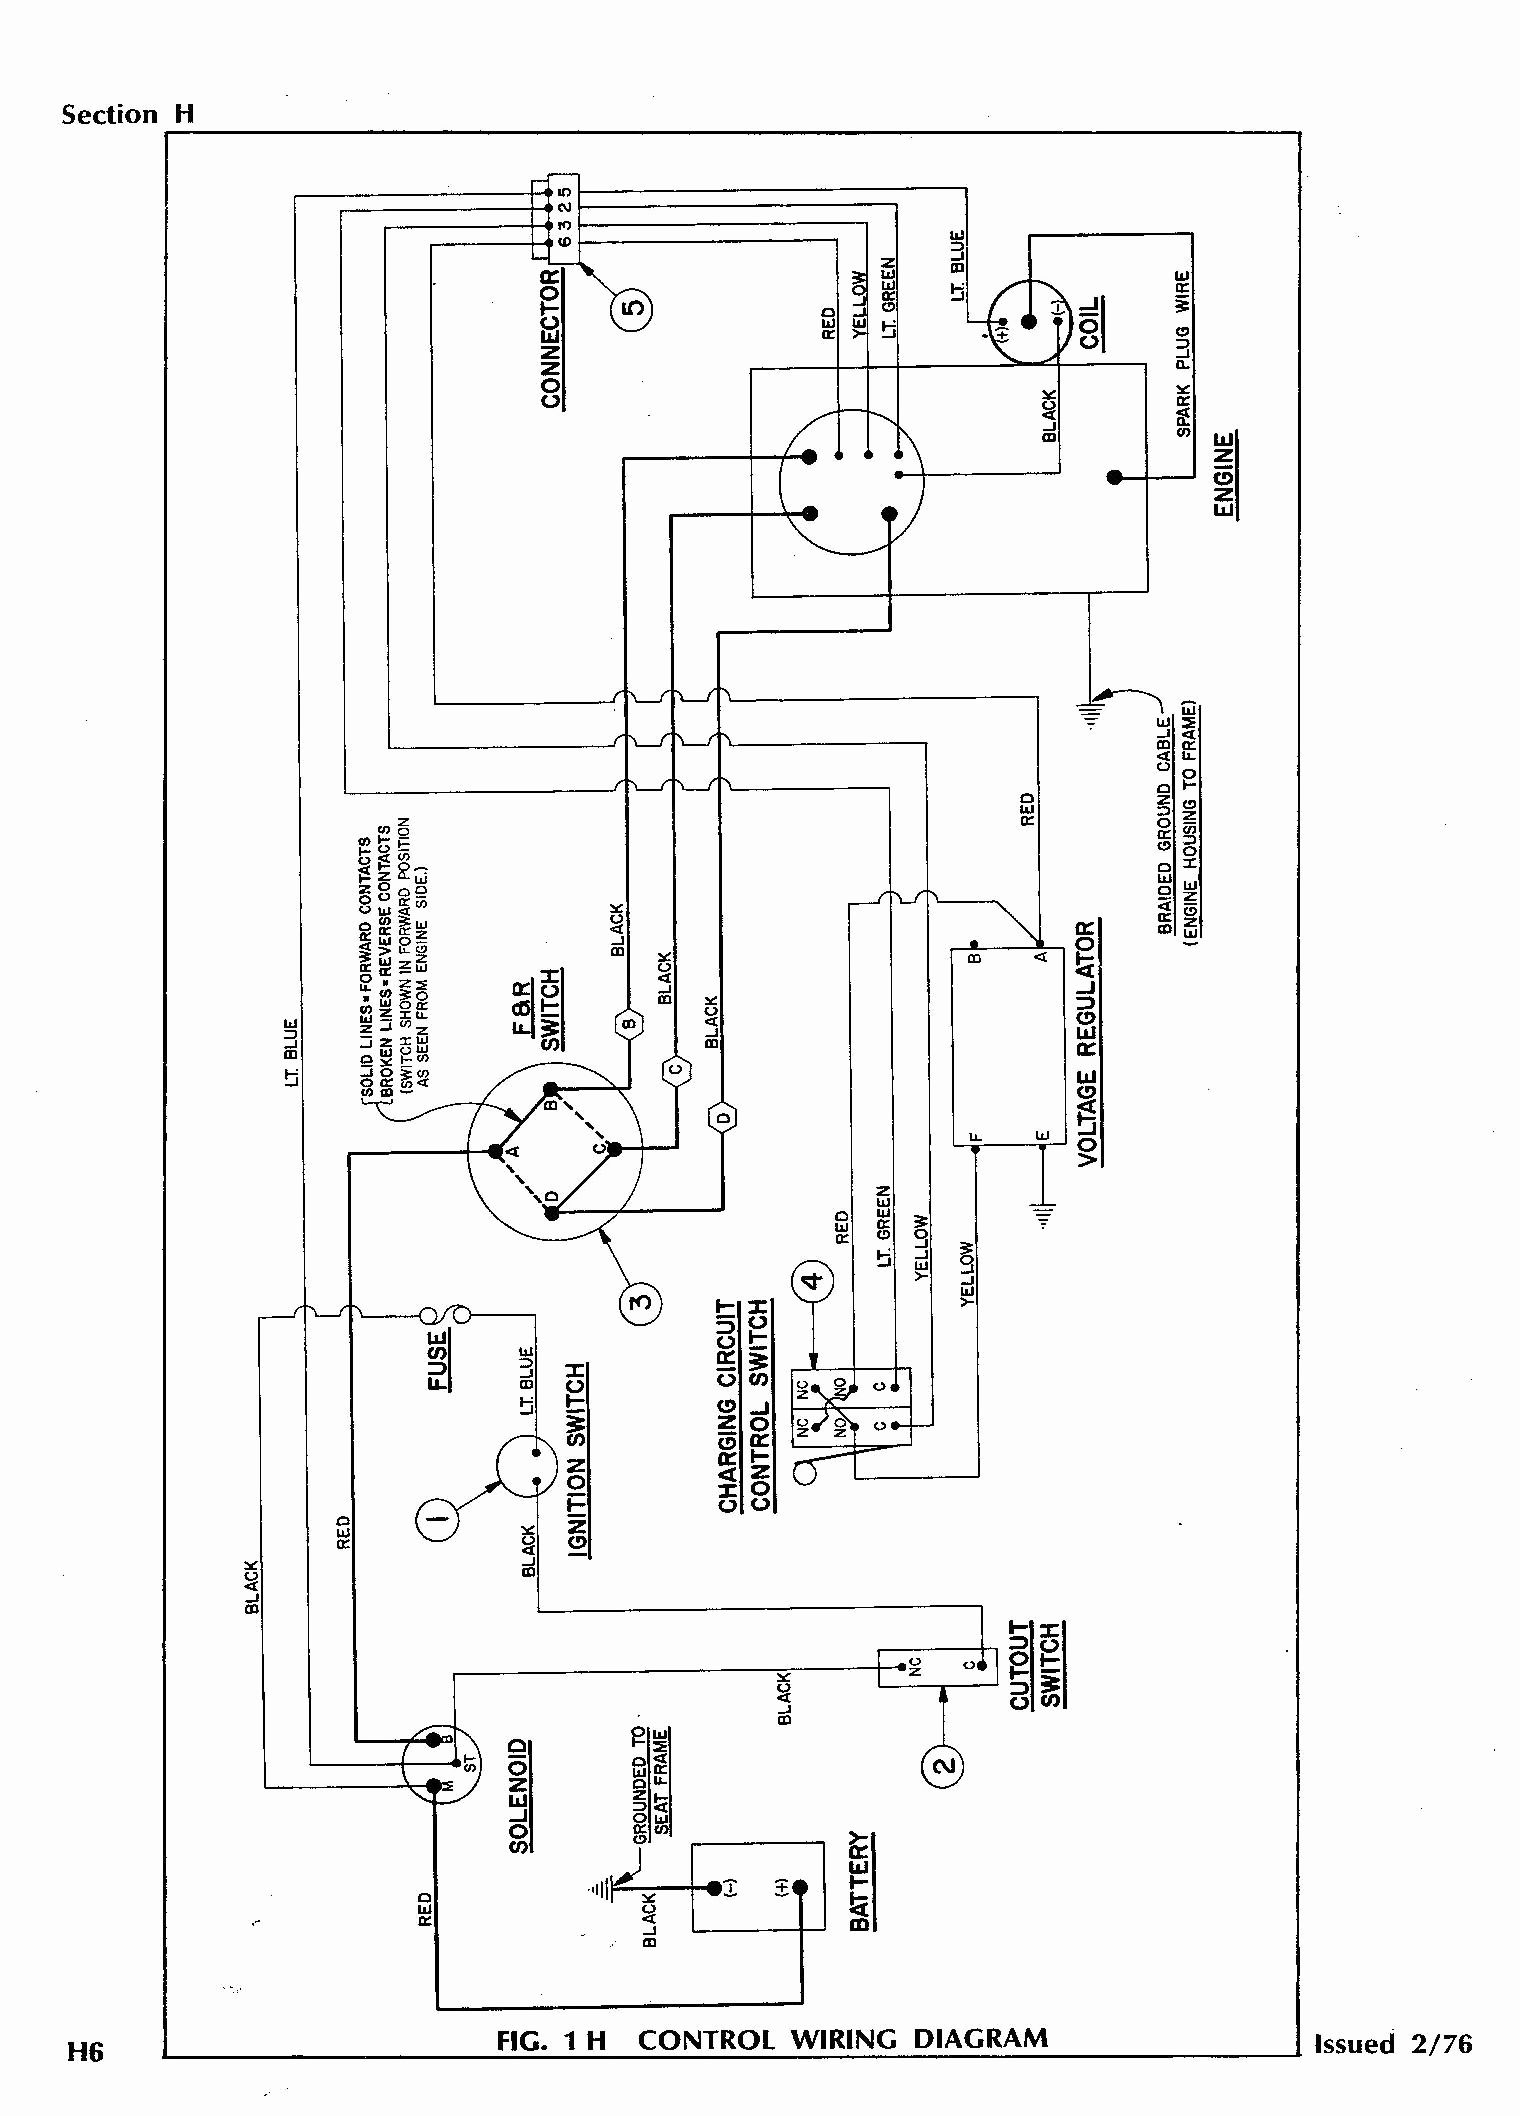 diagram] 1999 ez go workhorse wiring diagram full version hd quality wiring  diagram - texaswiring.agorasup.fr  agora sup